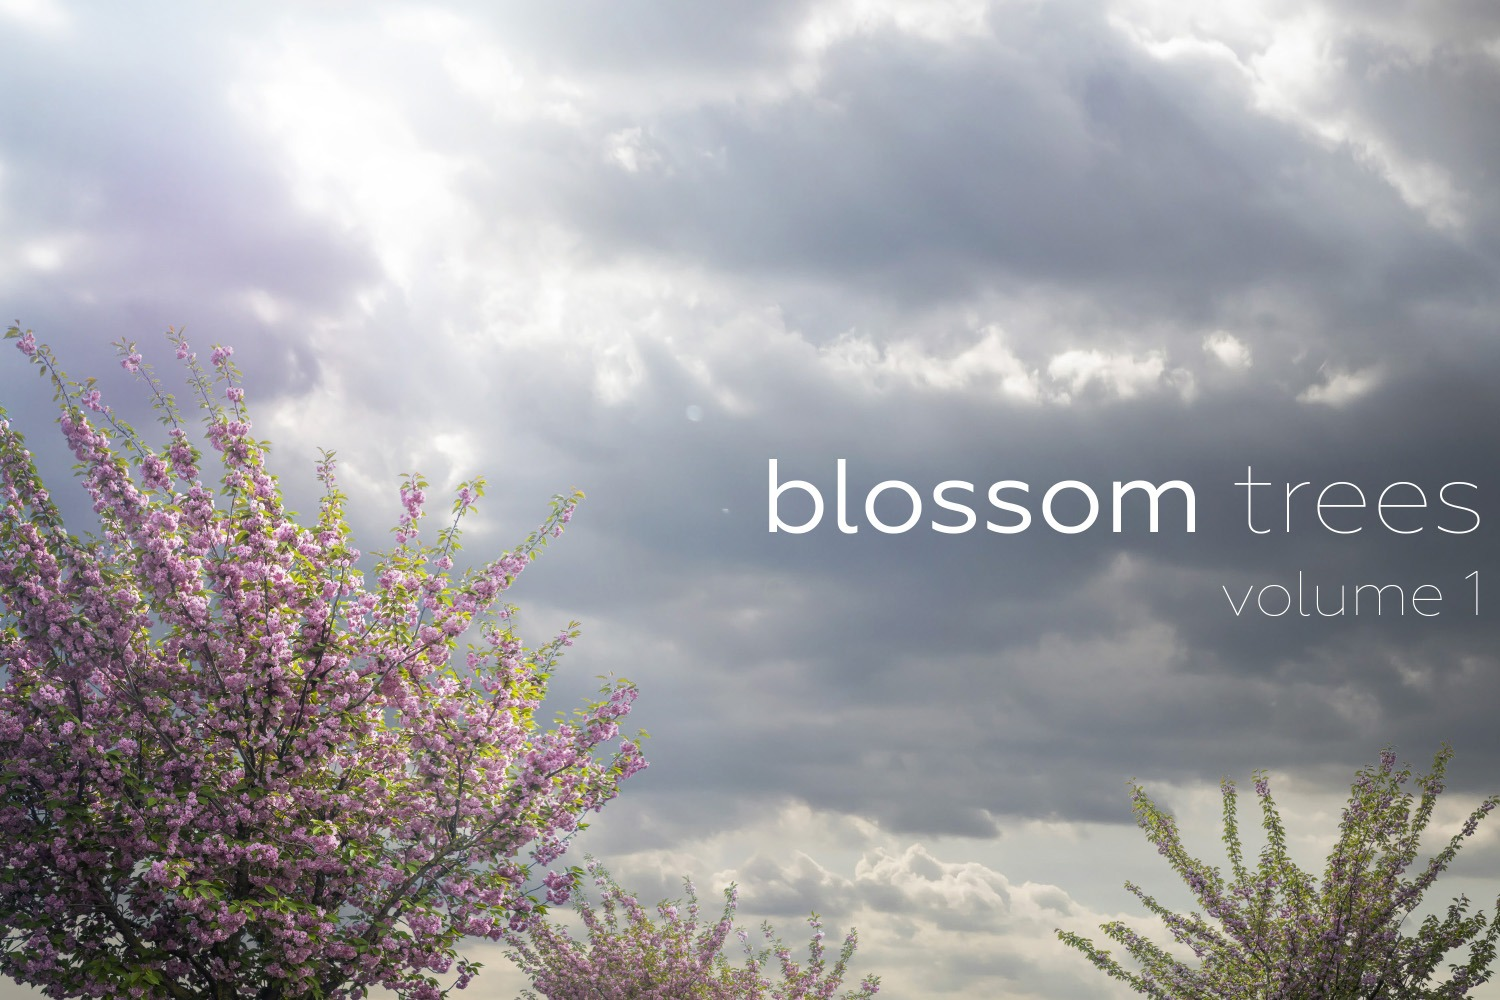 BLOSSOM TREES Volume 1